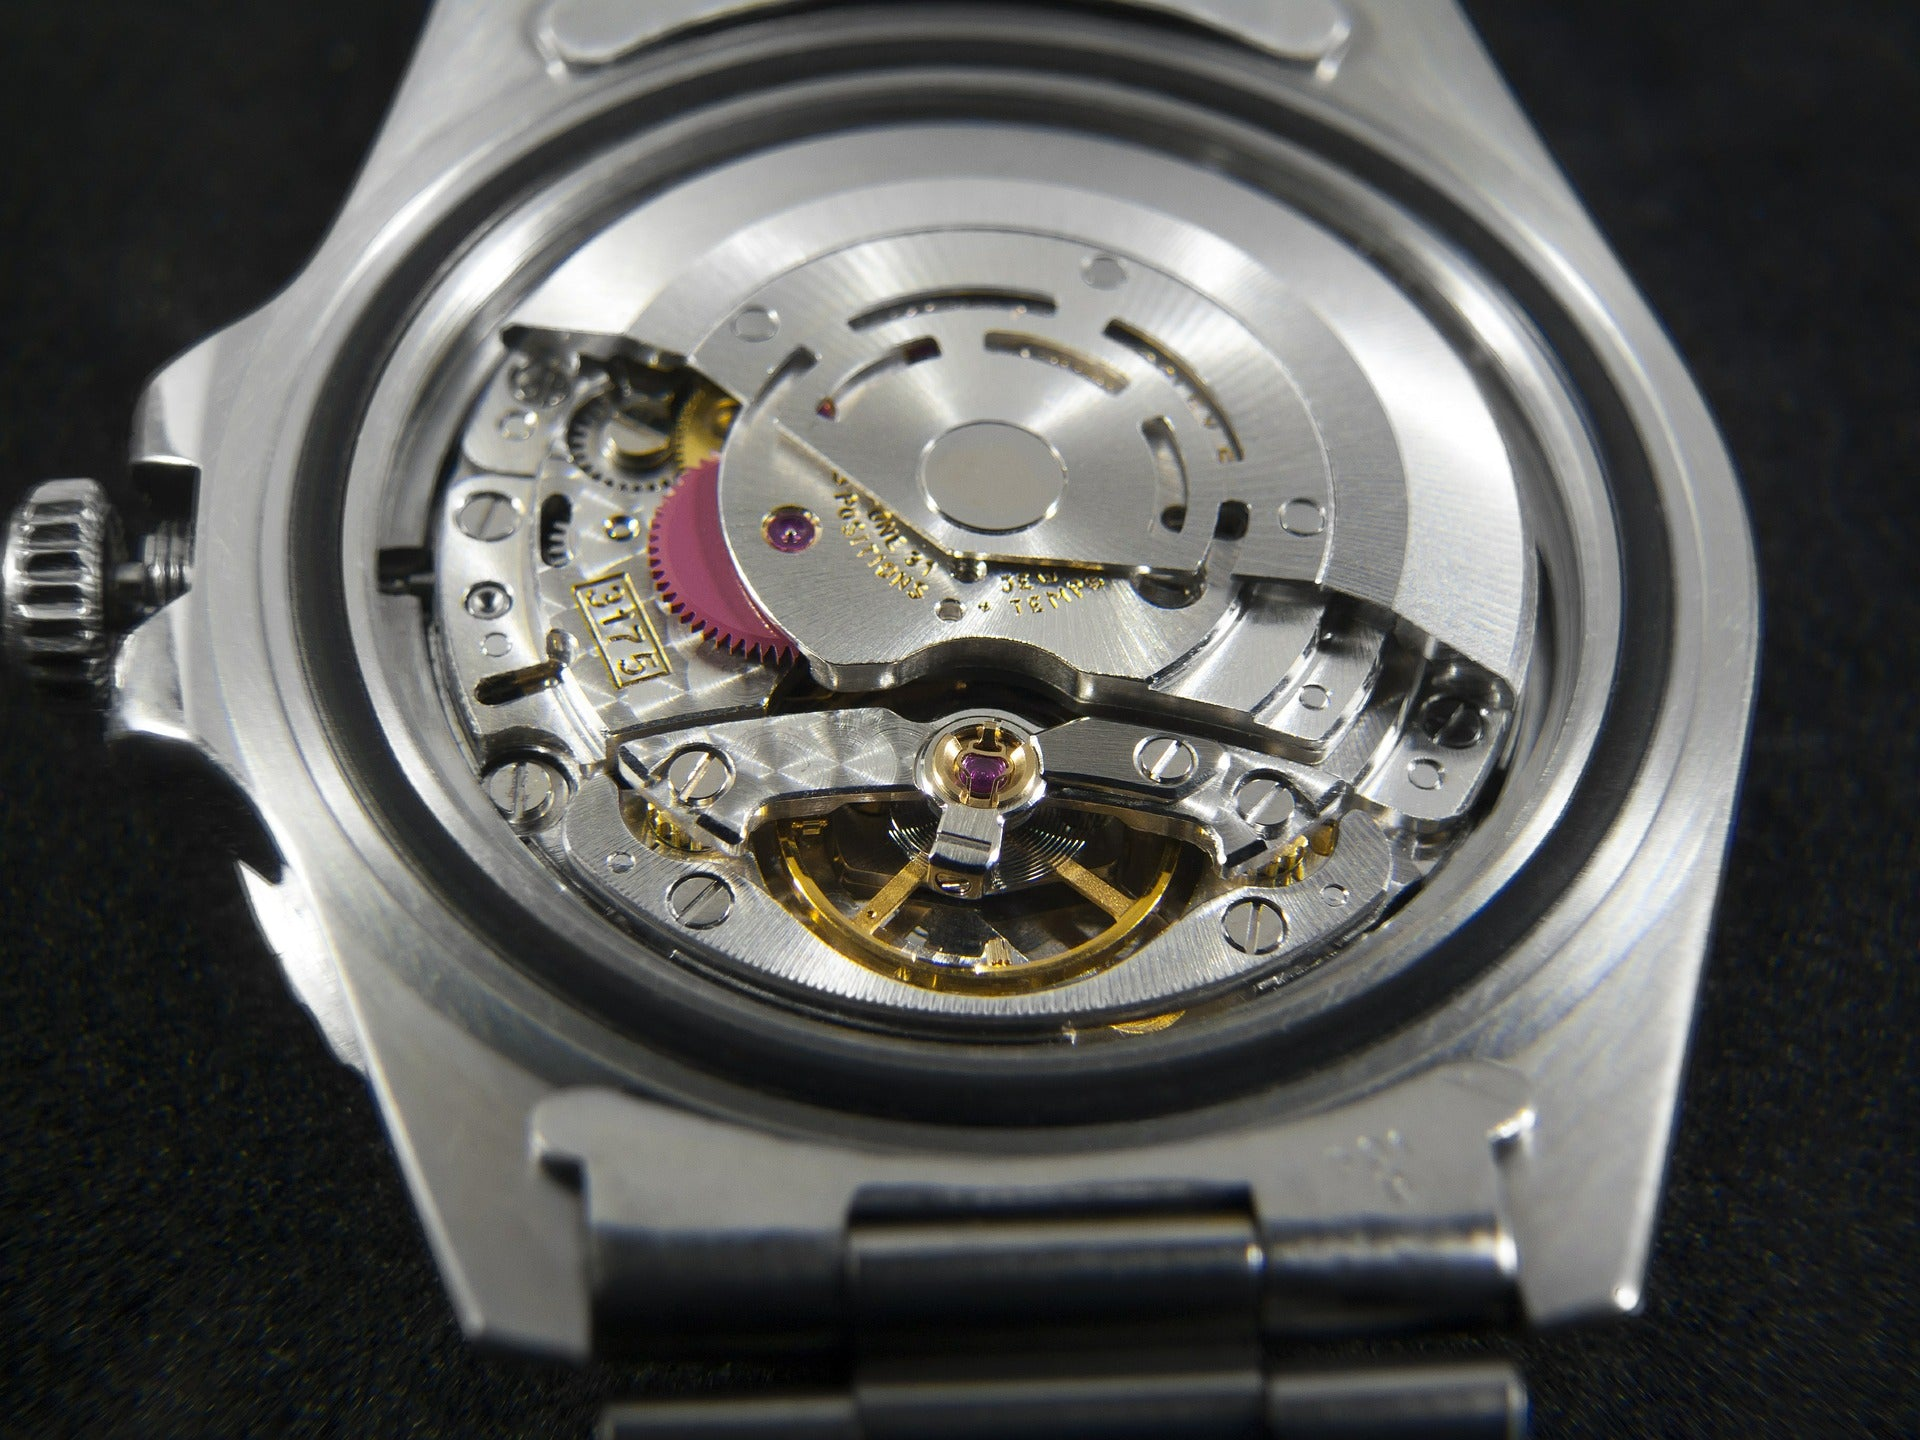 Why Watch Repairs Should Be Left to the Professionals